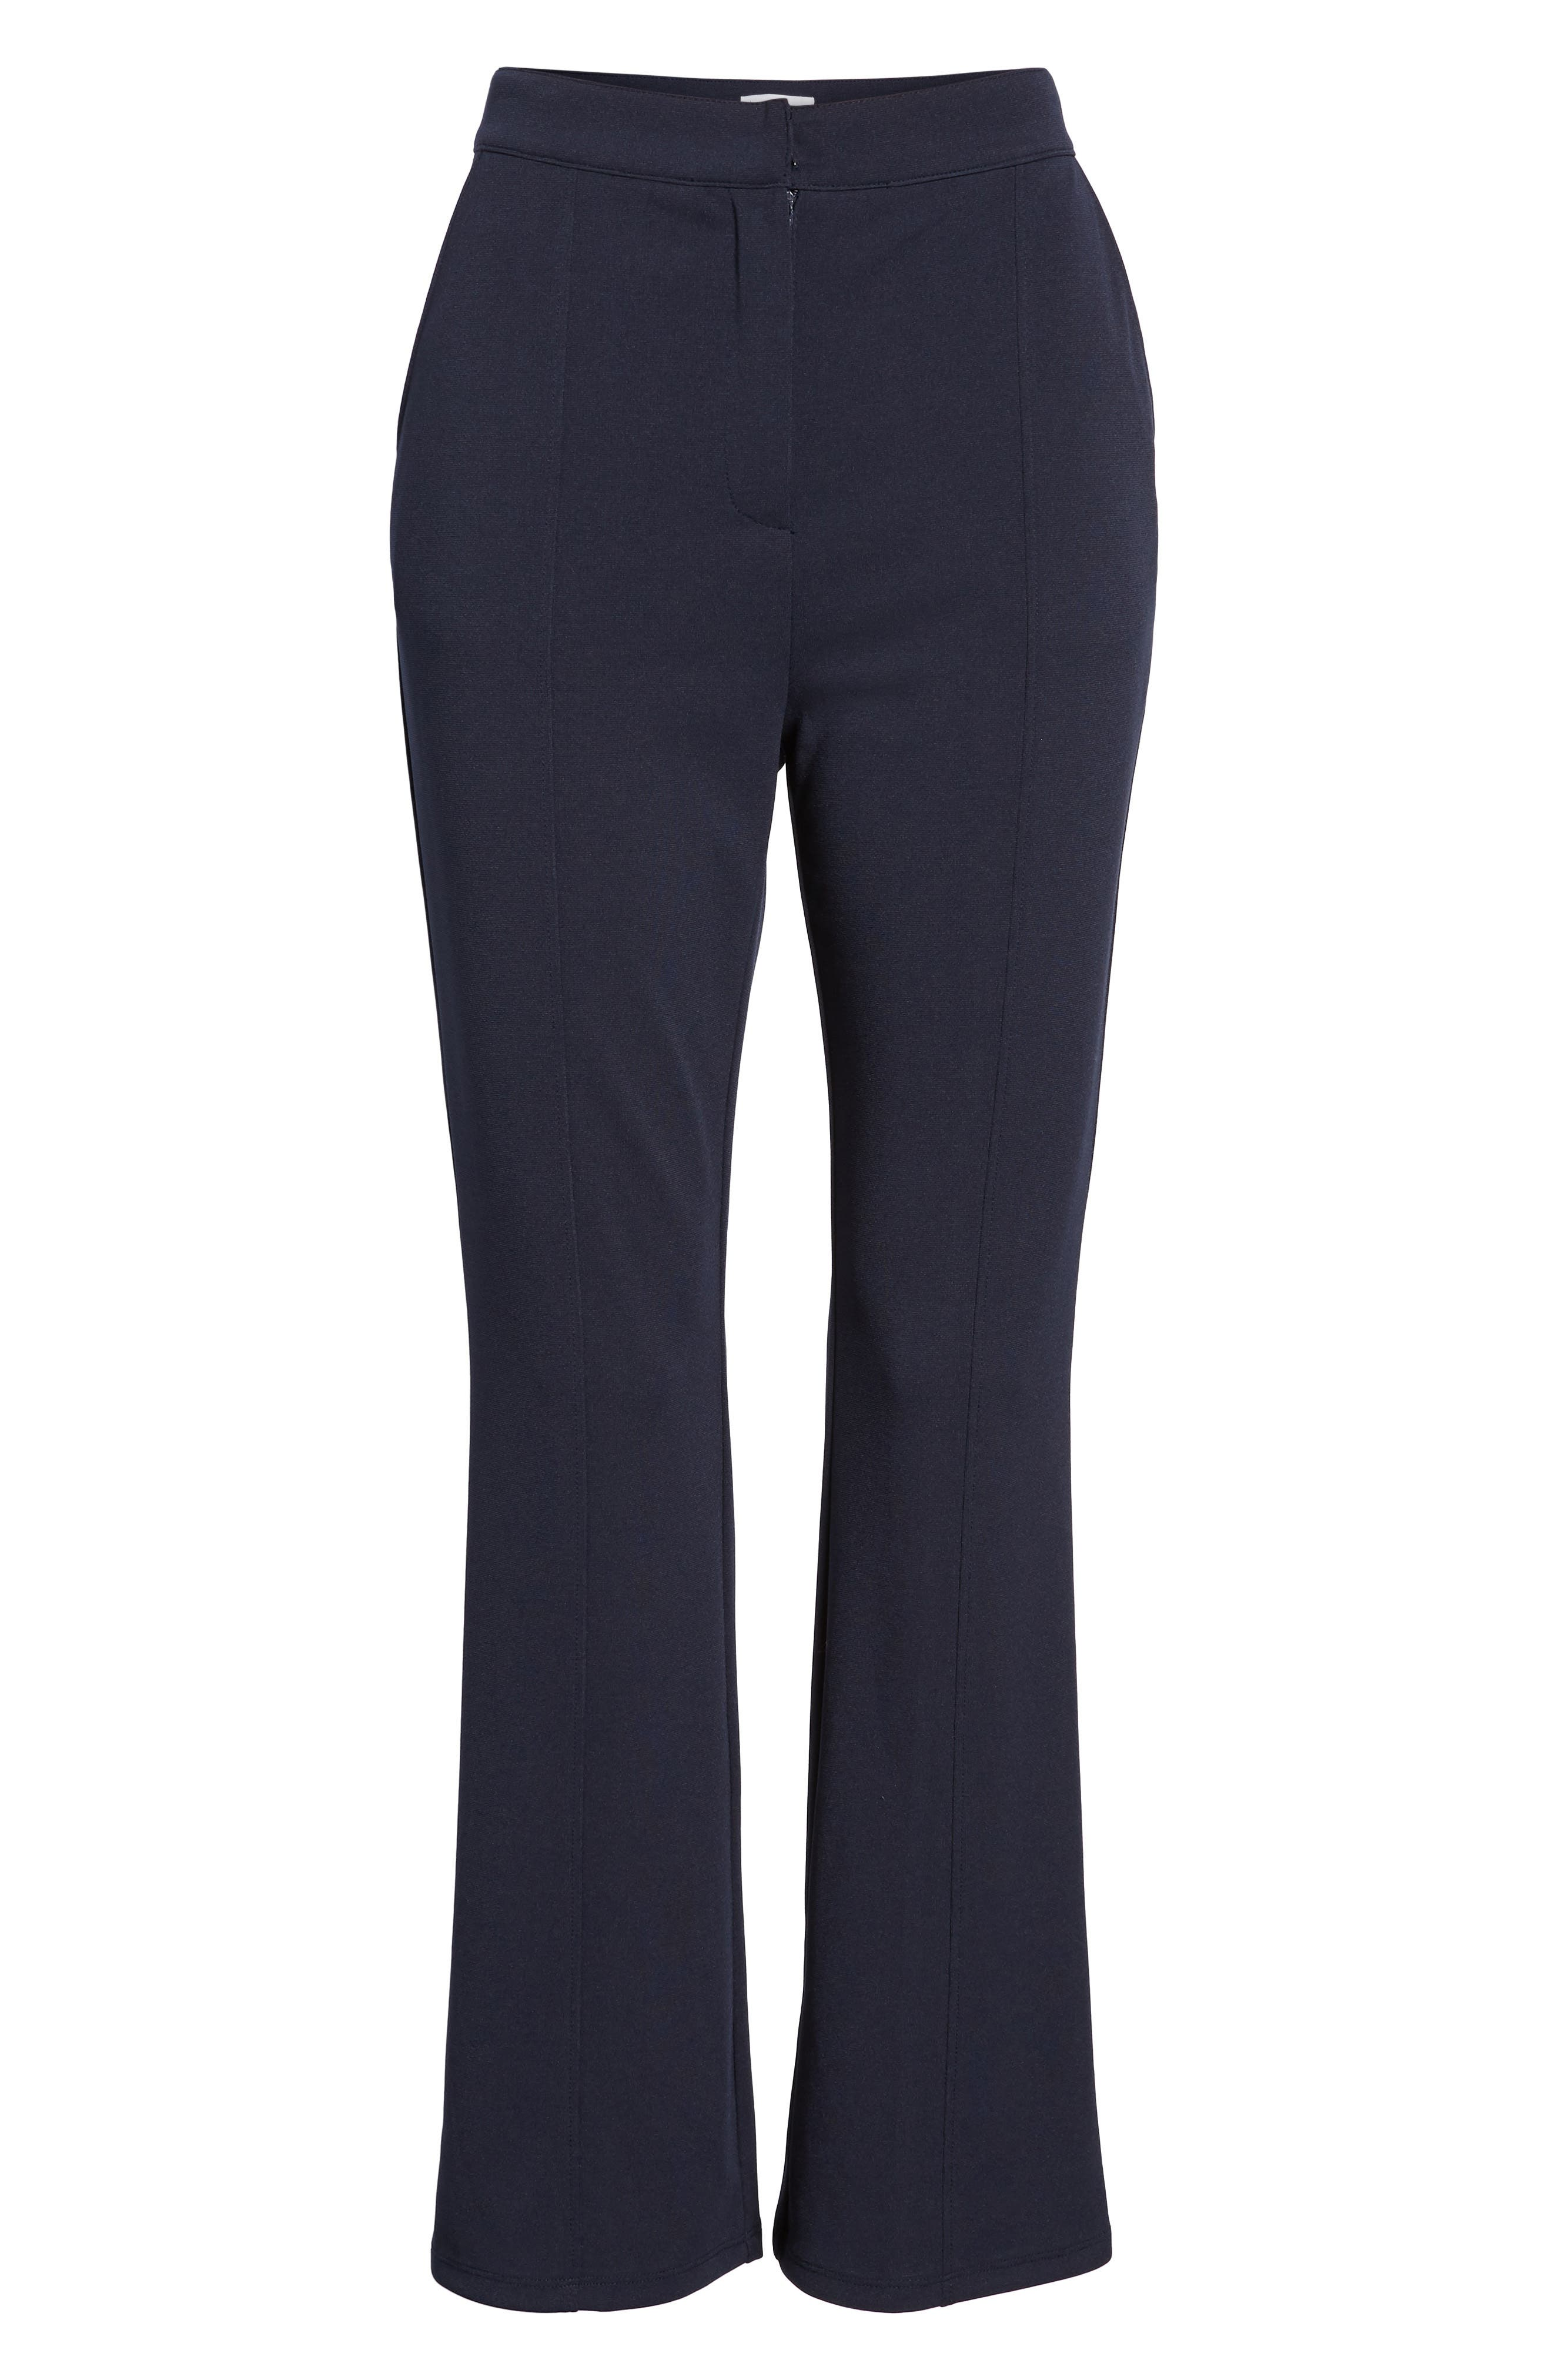 High Waist Crop Flare Pants,                             Alternate thumbnail 8, color,                             Navy Evening